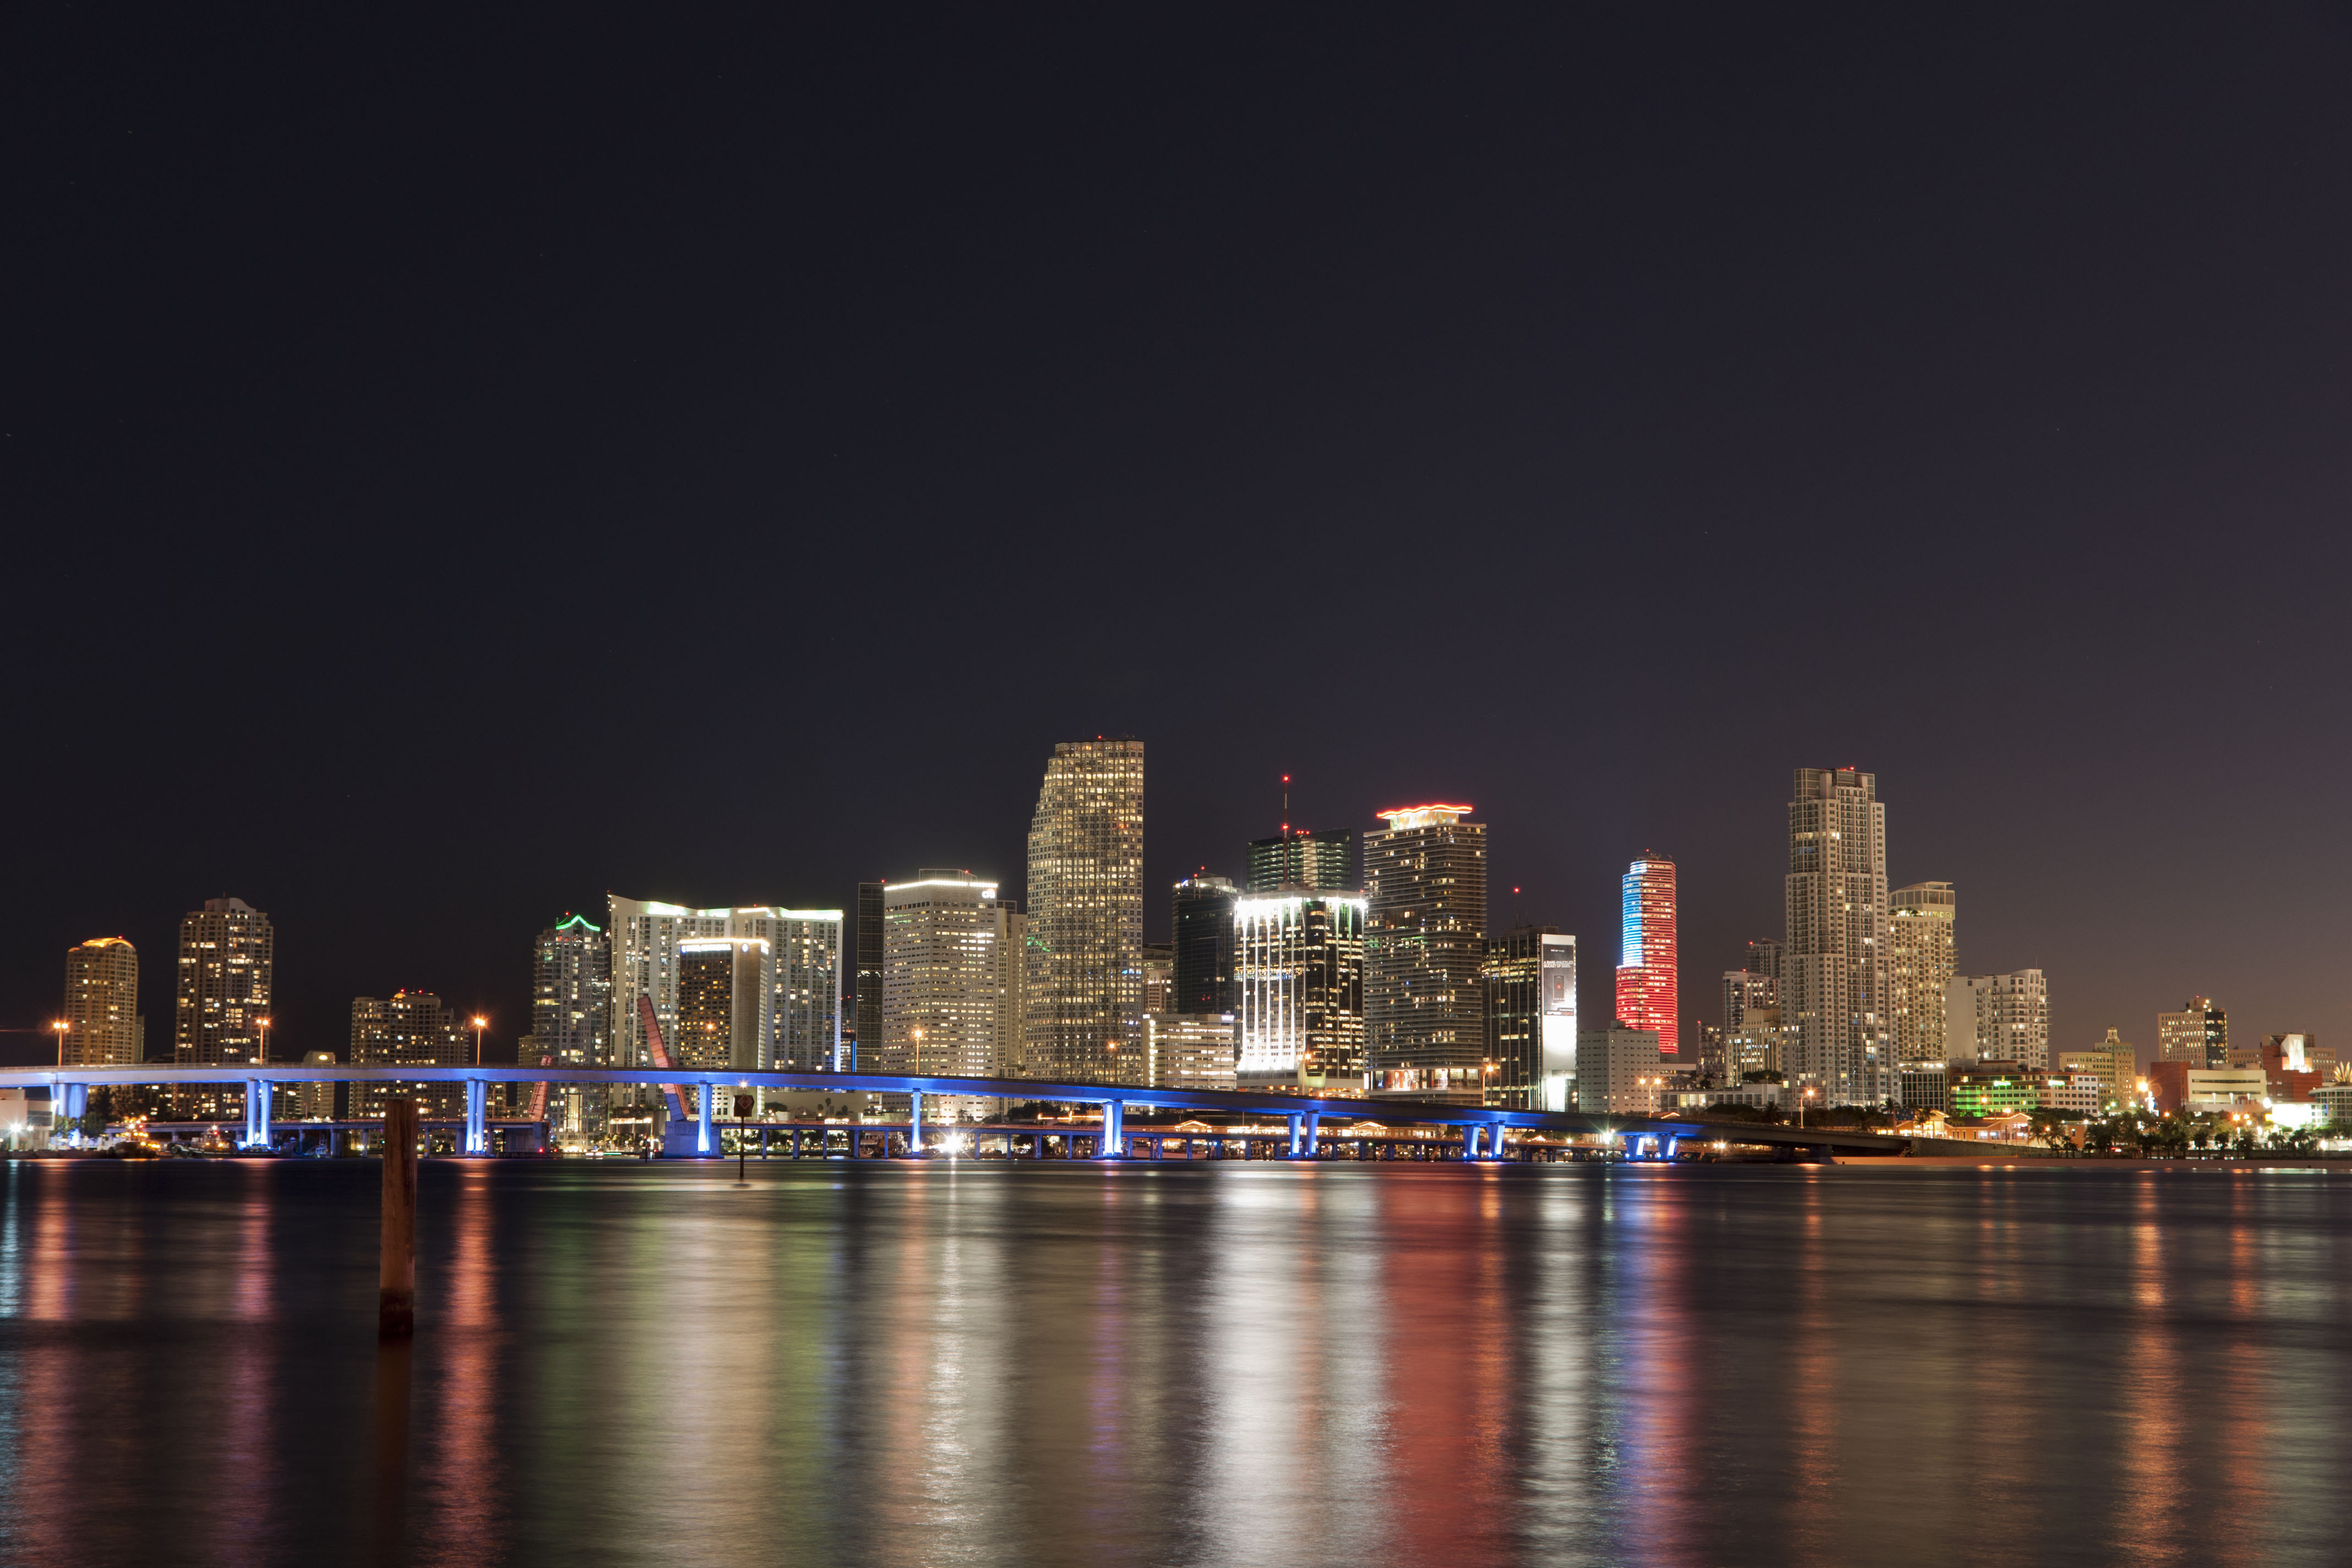 Nightime shot of downtown Miami